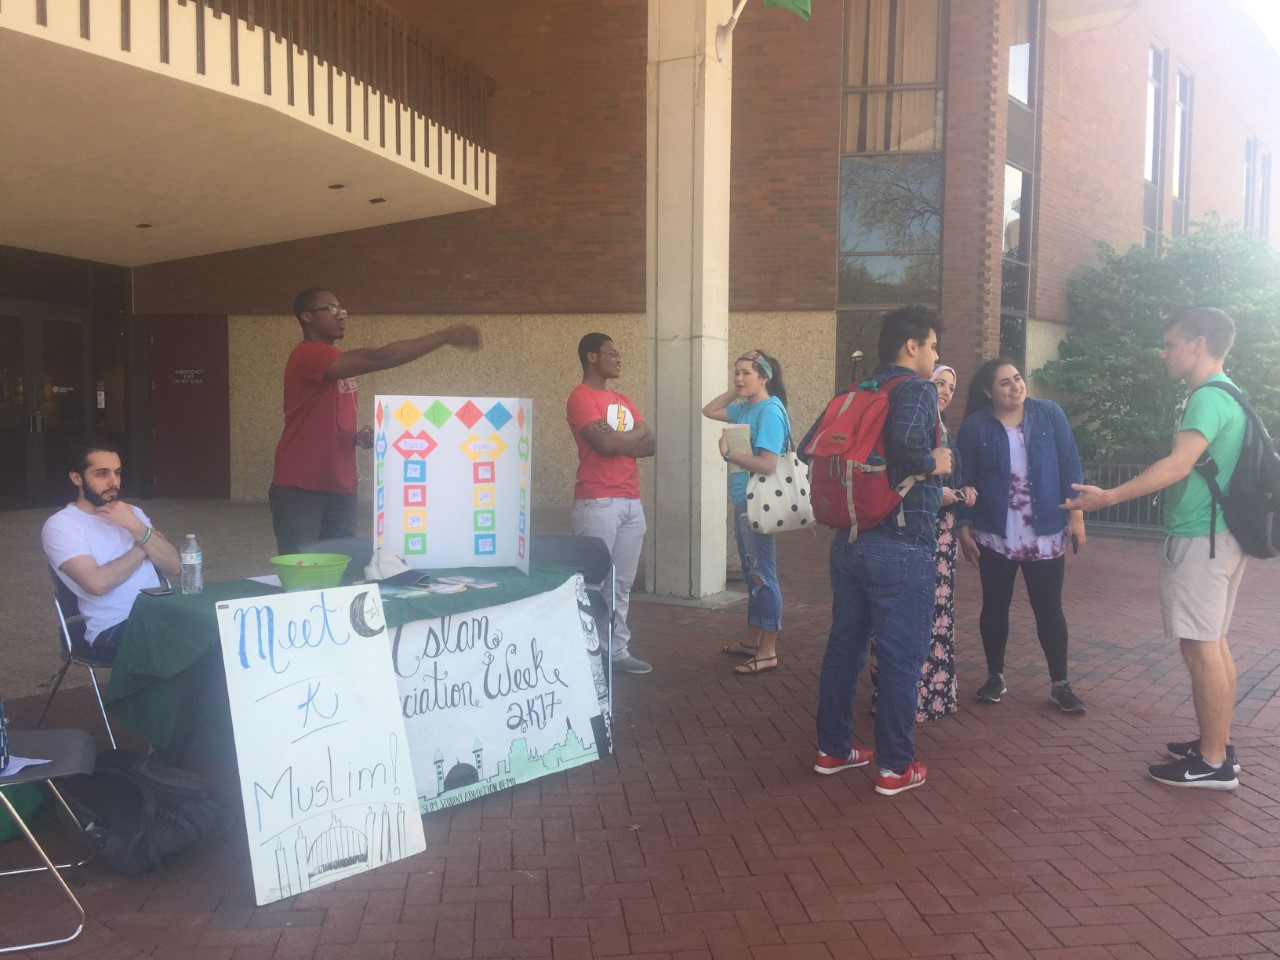 Students gather outside the Marshall Student Center to inform students about the events coming up during Muslim appreciation week.